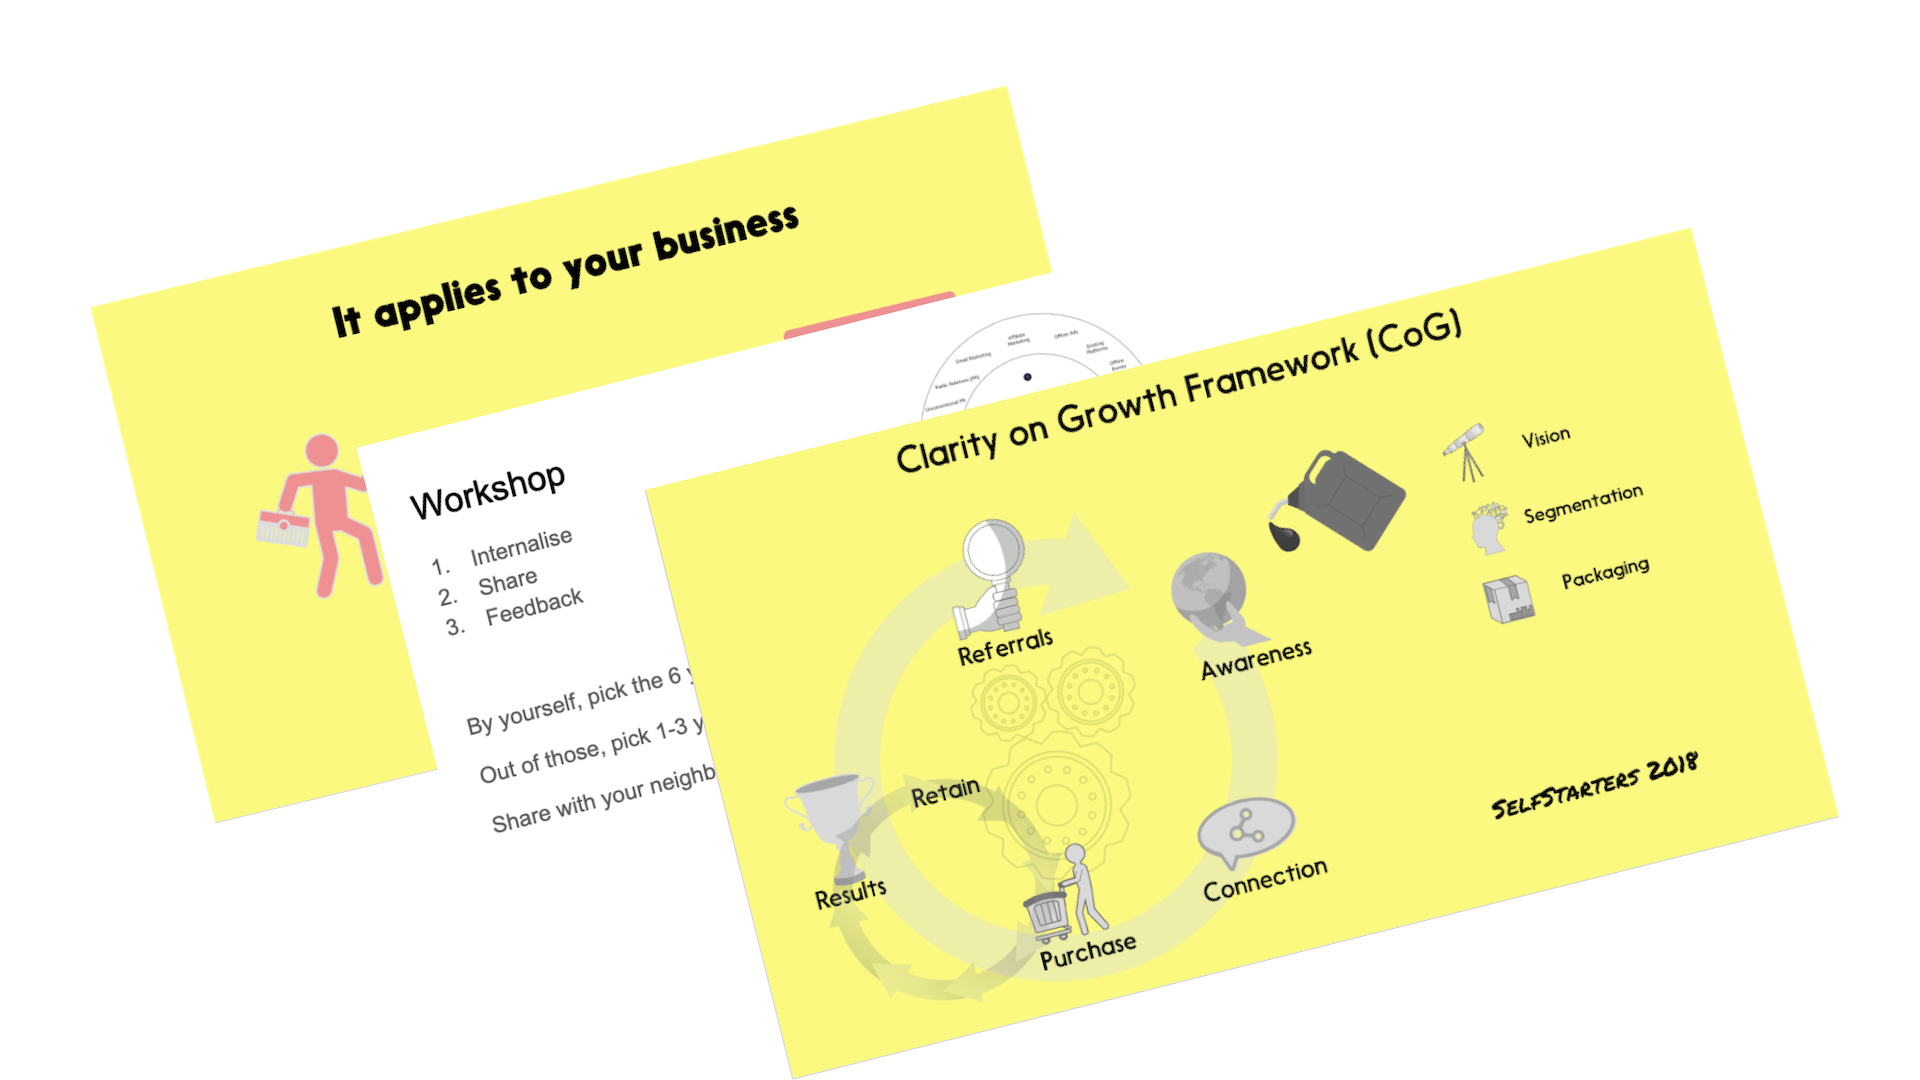 clarity on growth framework